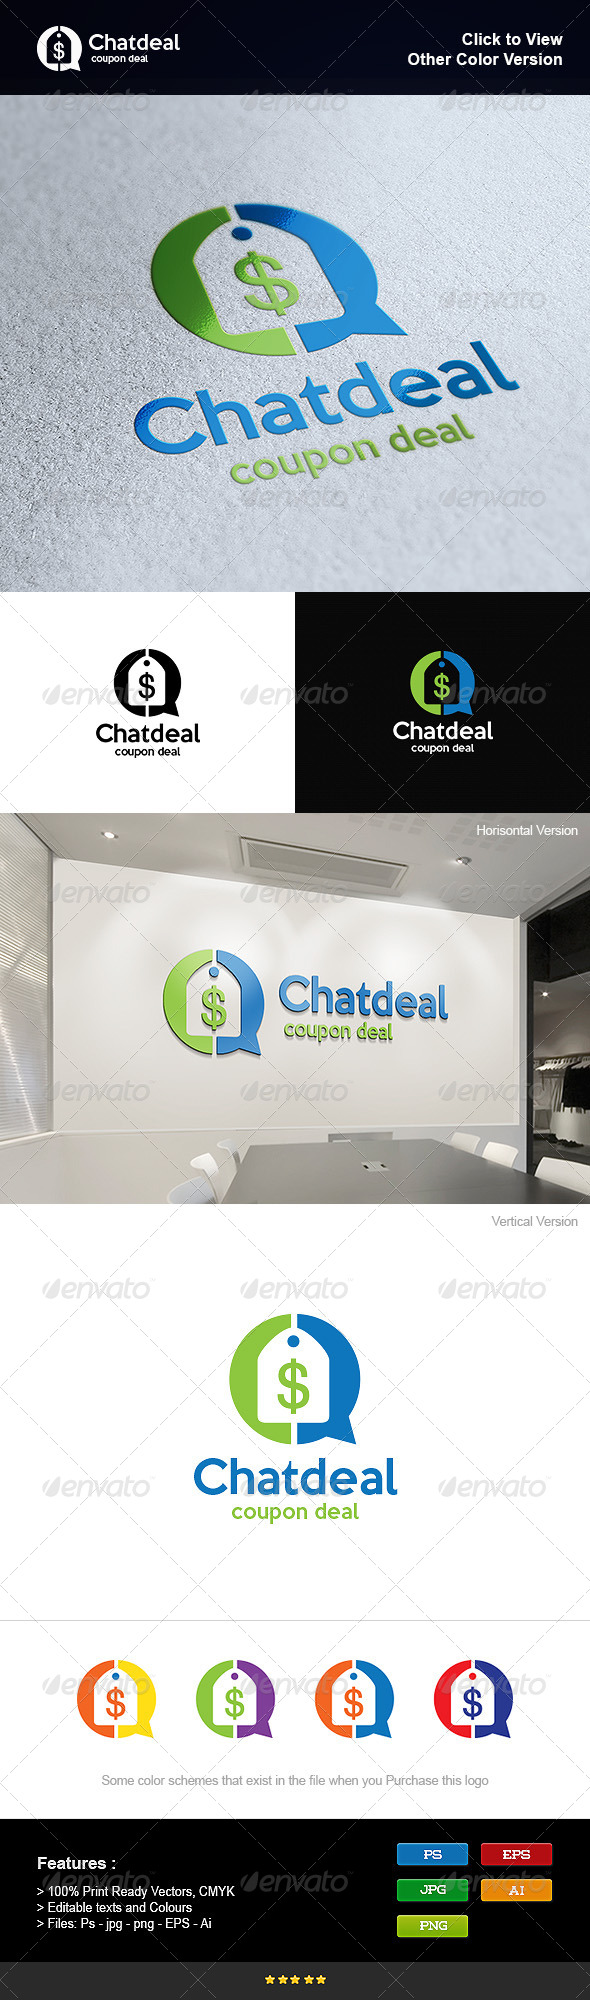 GraphicRiver Coupon Deal Chat 8275675